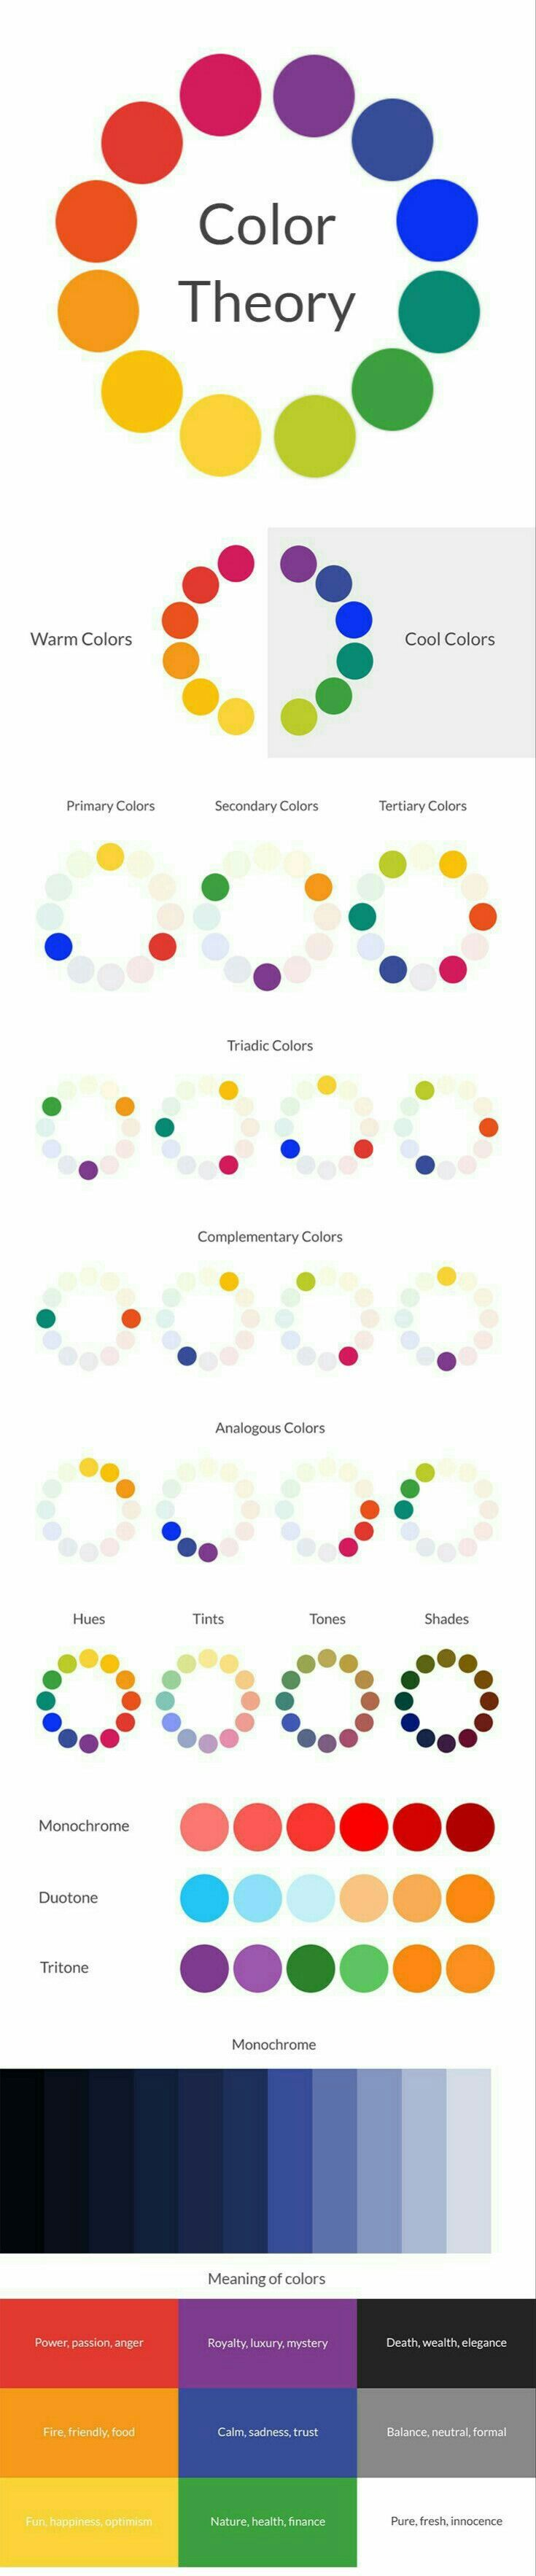 Color circle art publishing - 34 Best Color Images On Pinterest Color Theory Color Wheel Design And Colors